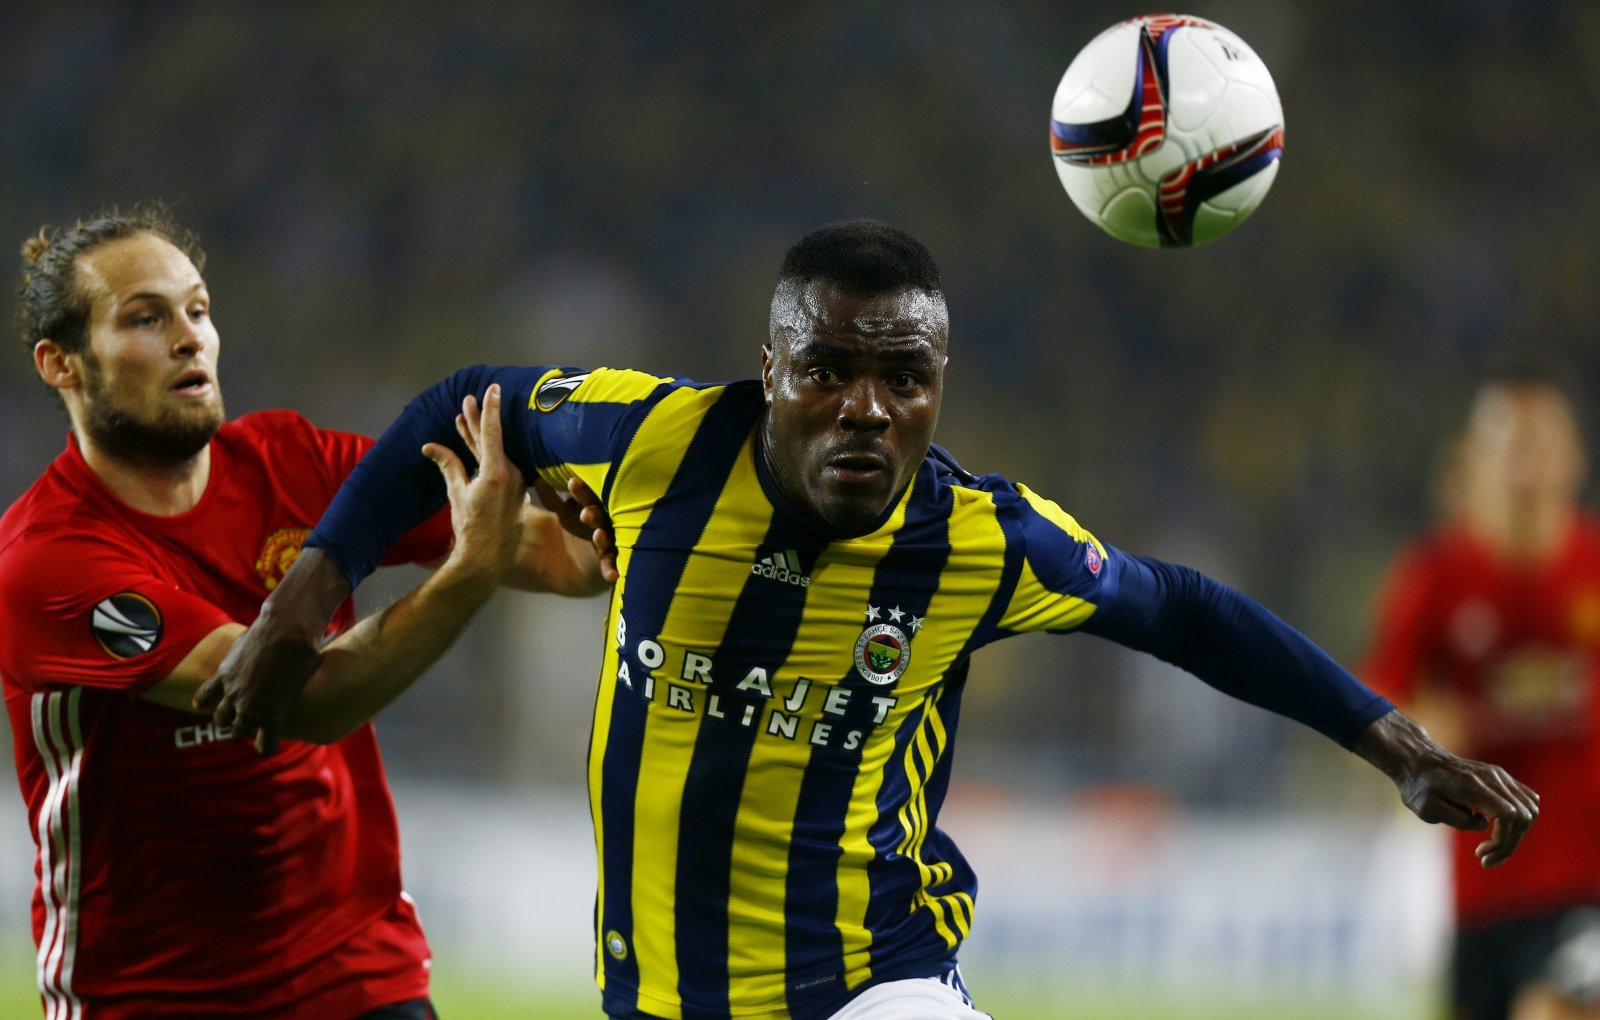 Leeds United should move for free agent Emmanuel Emenike this summer